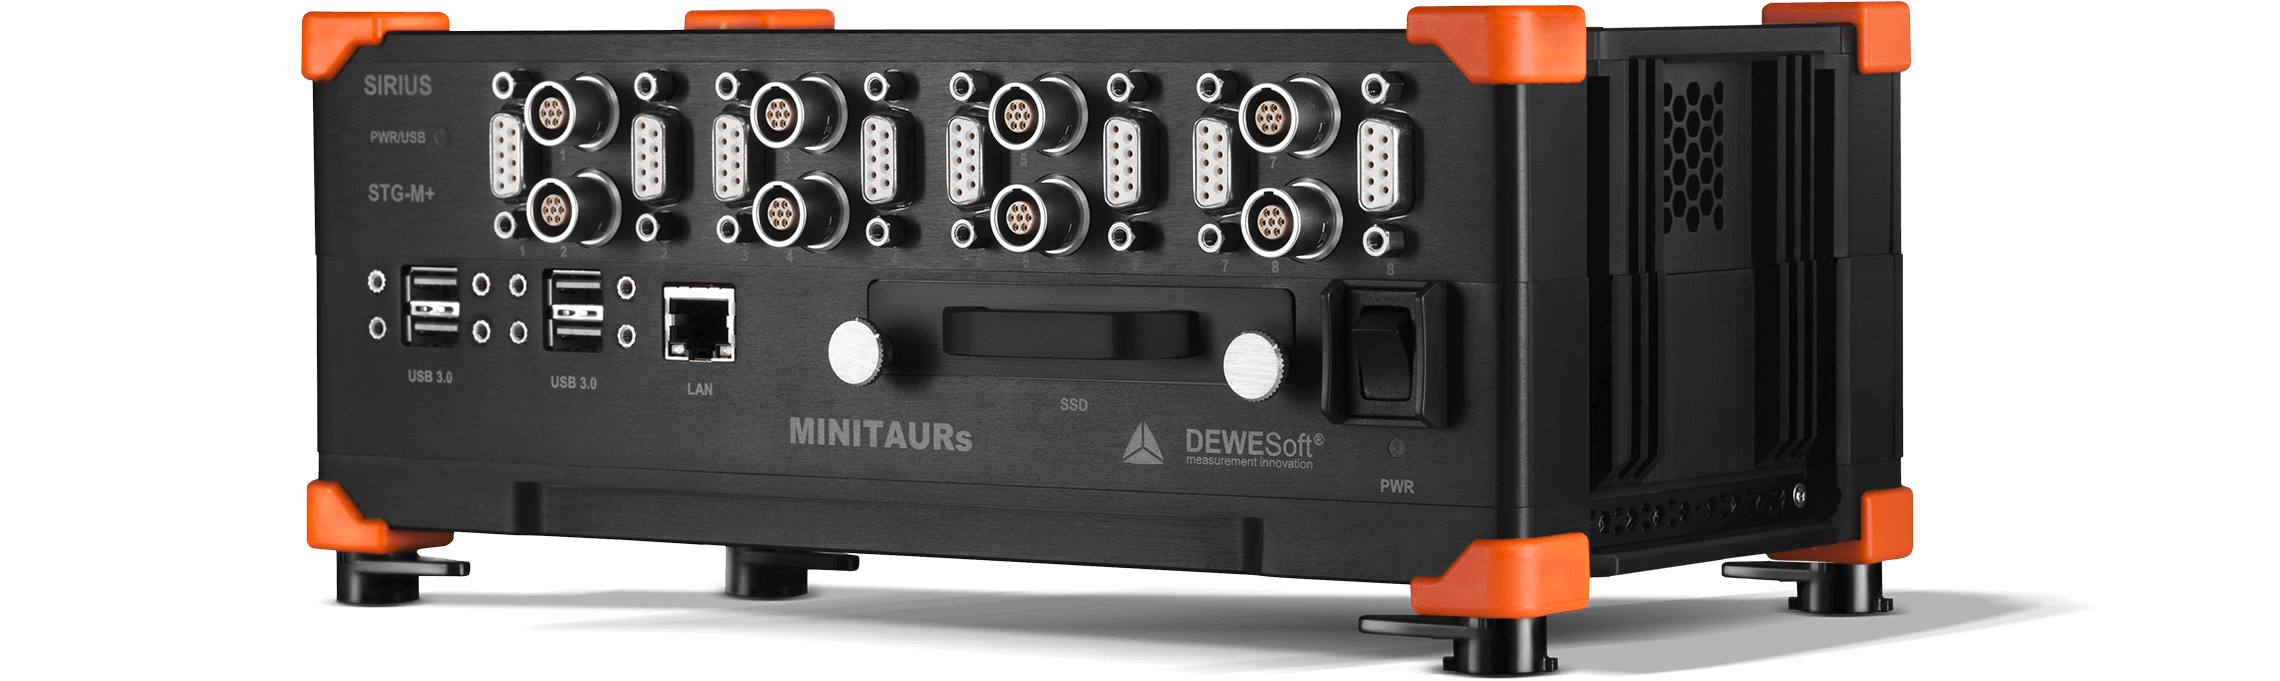 MINITAURs data acquisition system from Deweoft